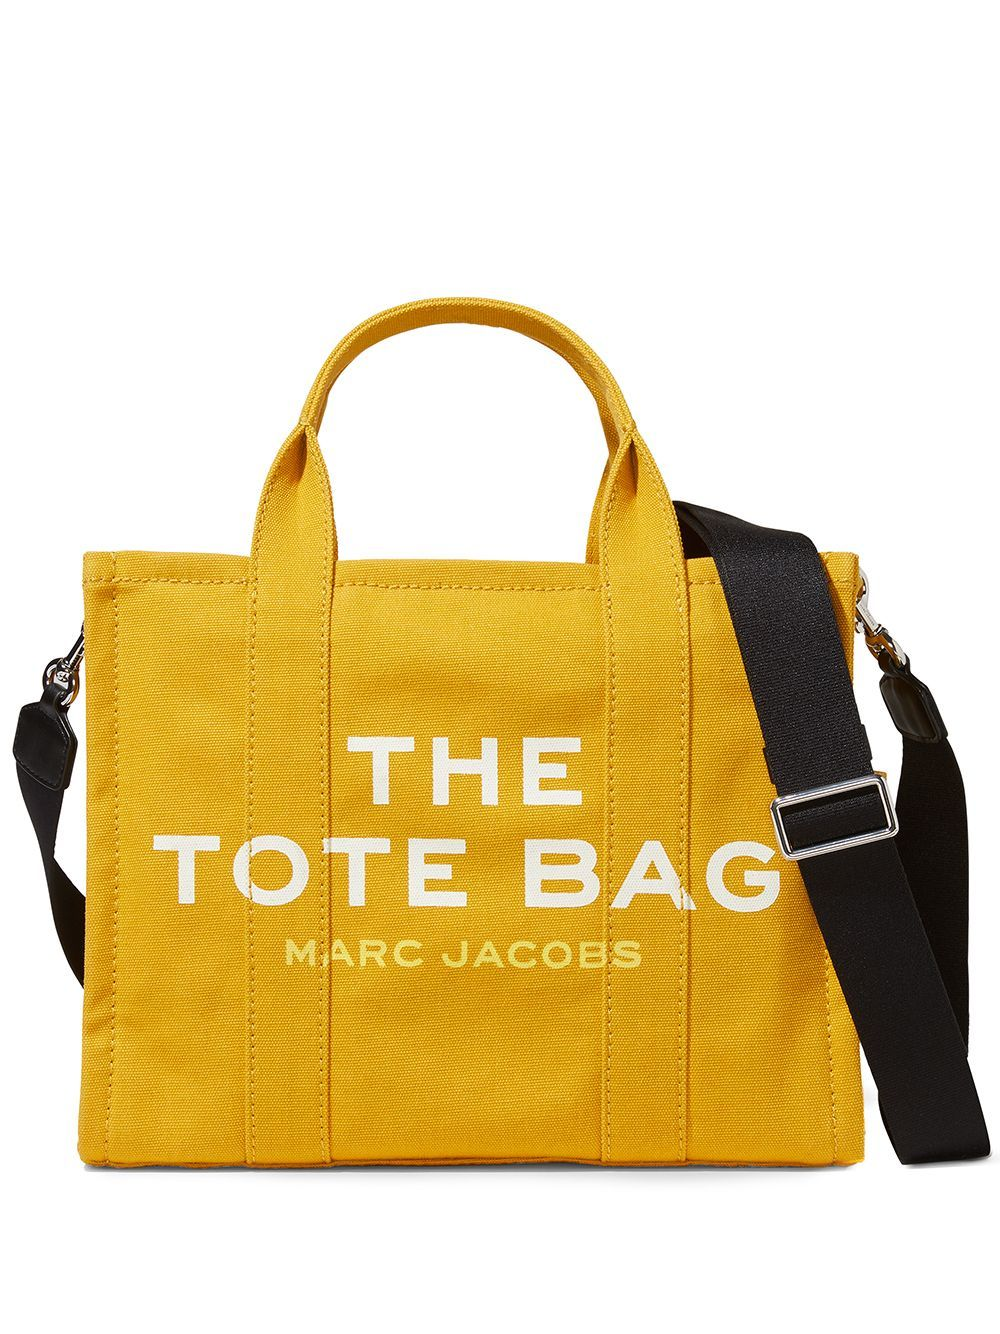 Yellow cotton The Small Traveler tote bag from Marc Jacobs featuring logo print to the front, logo p